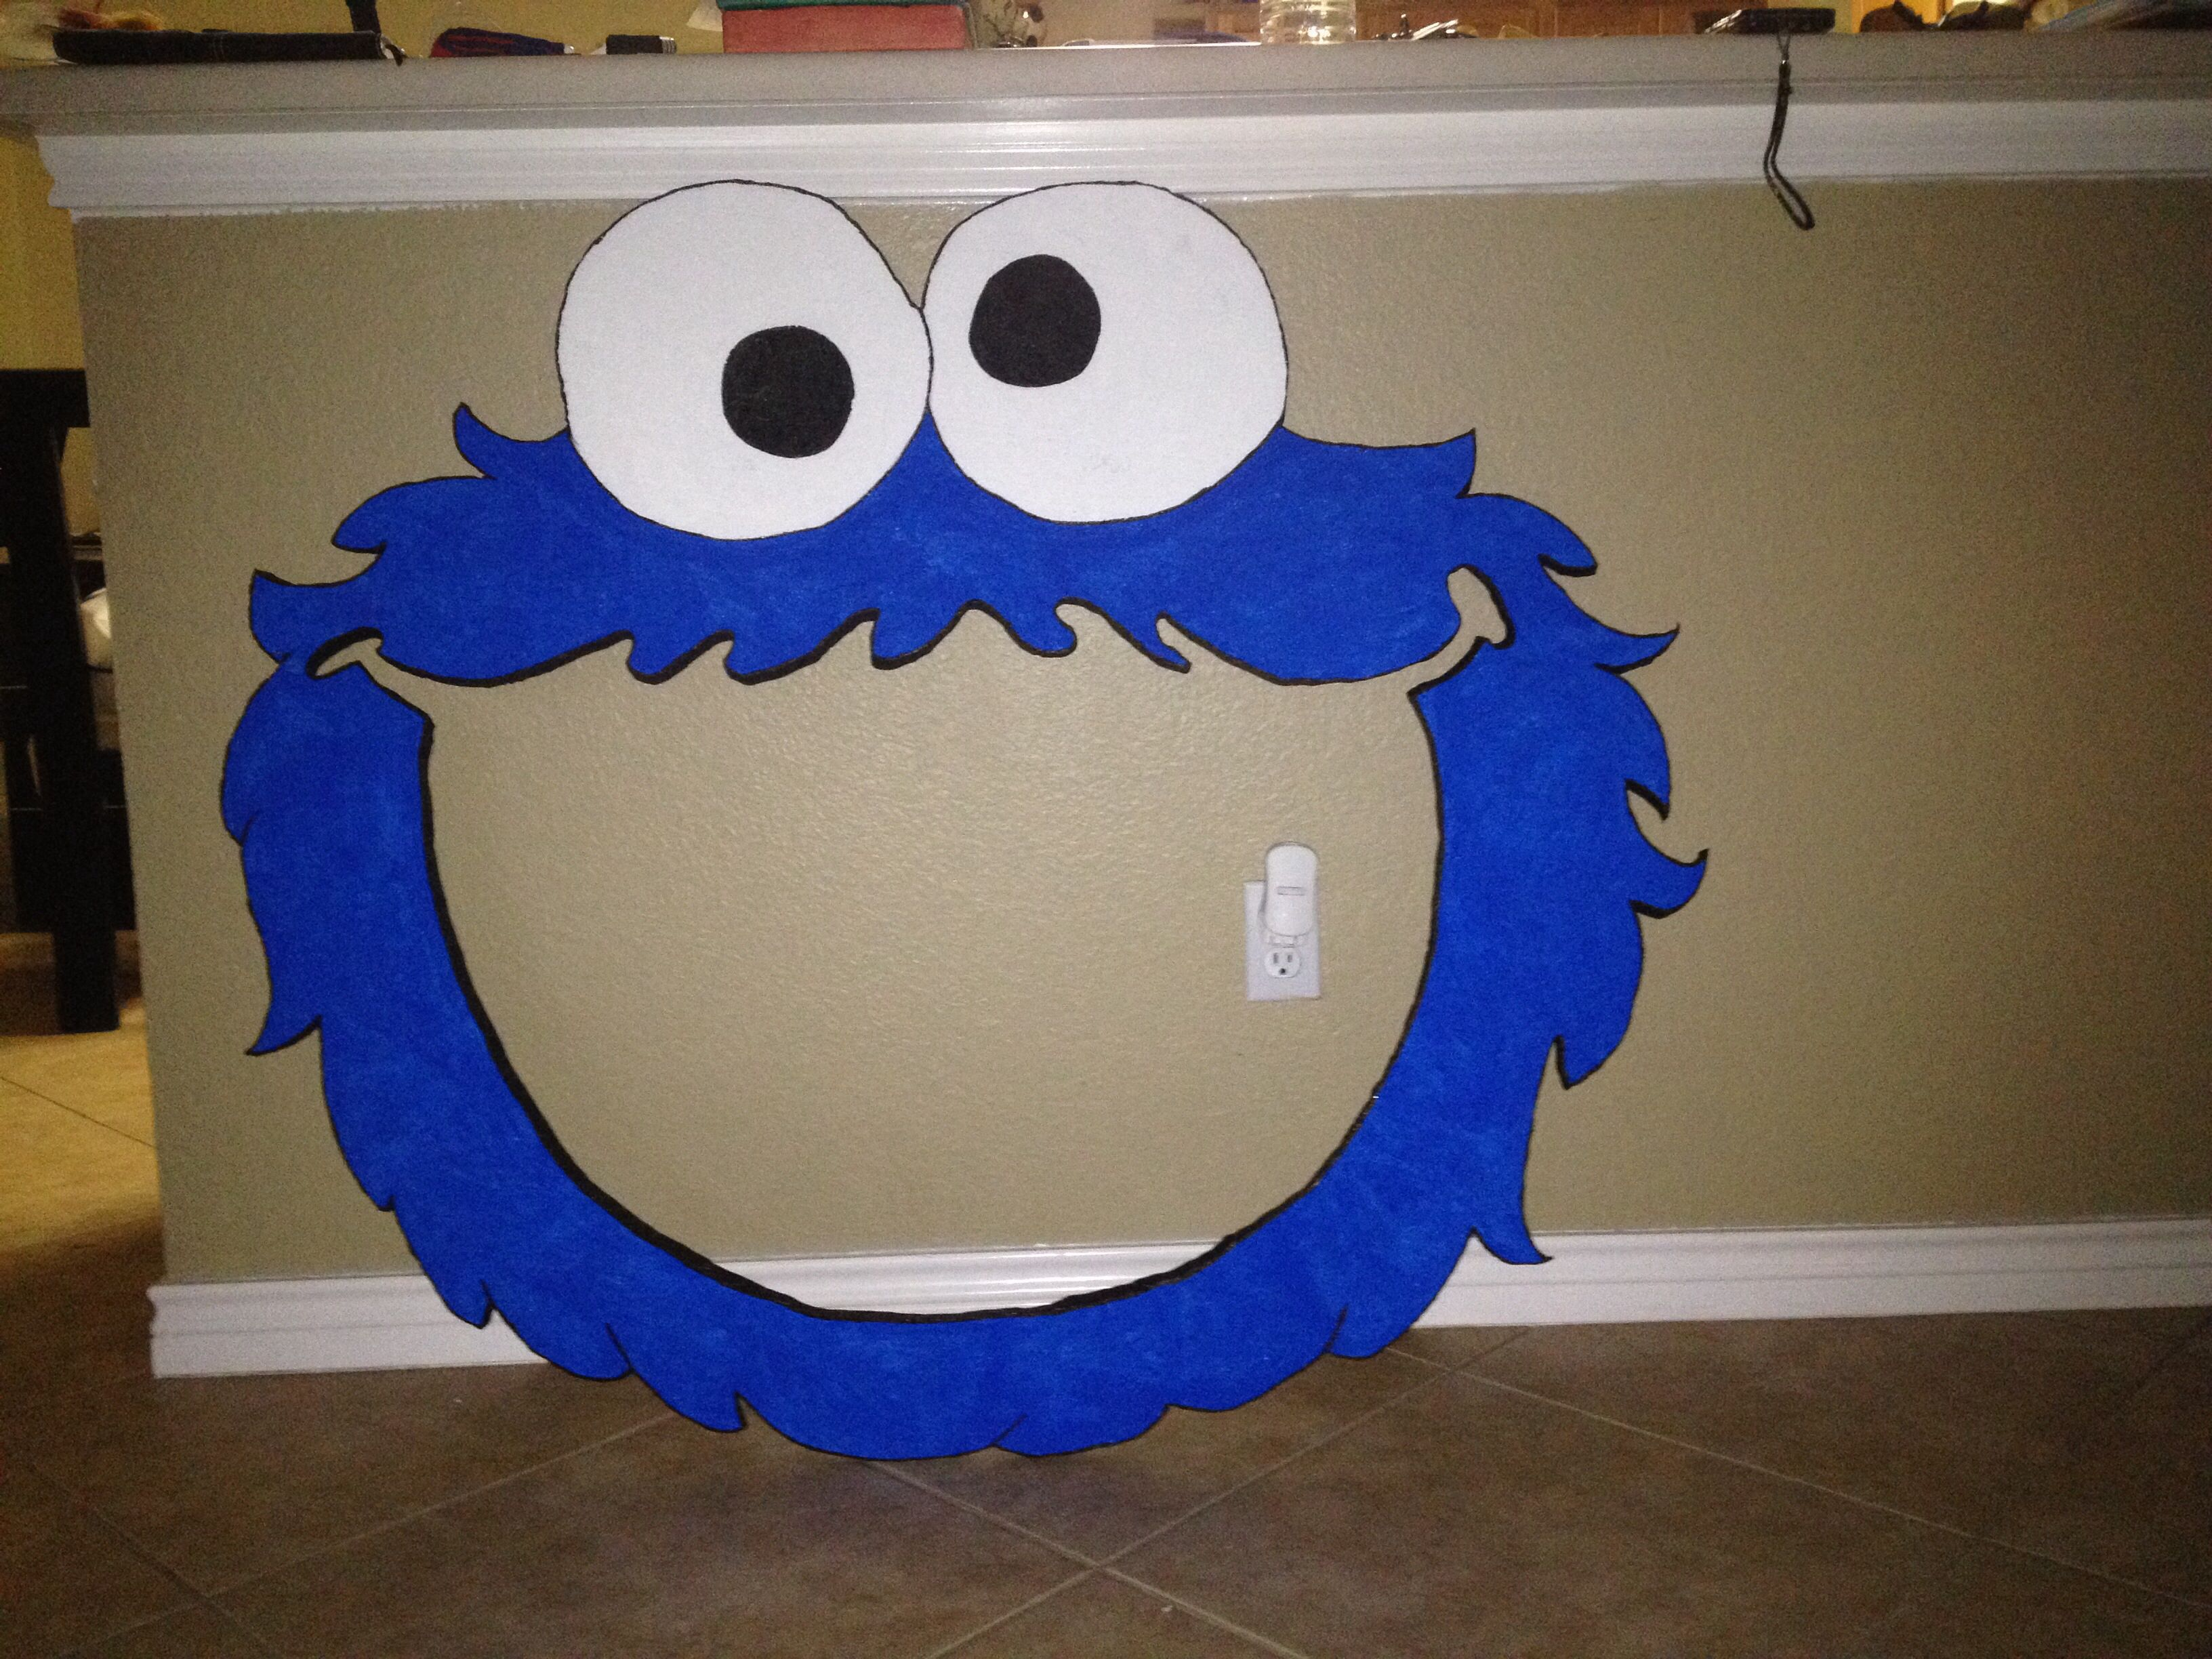 Cookie monster styrofoam frame 42\